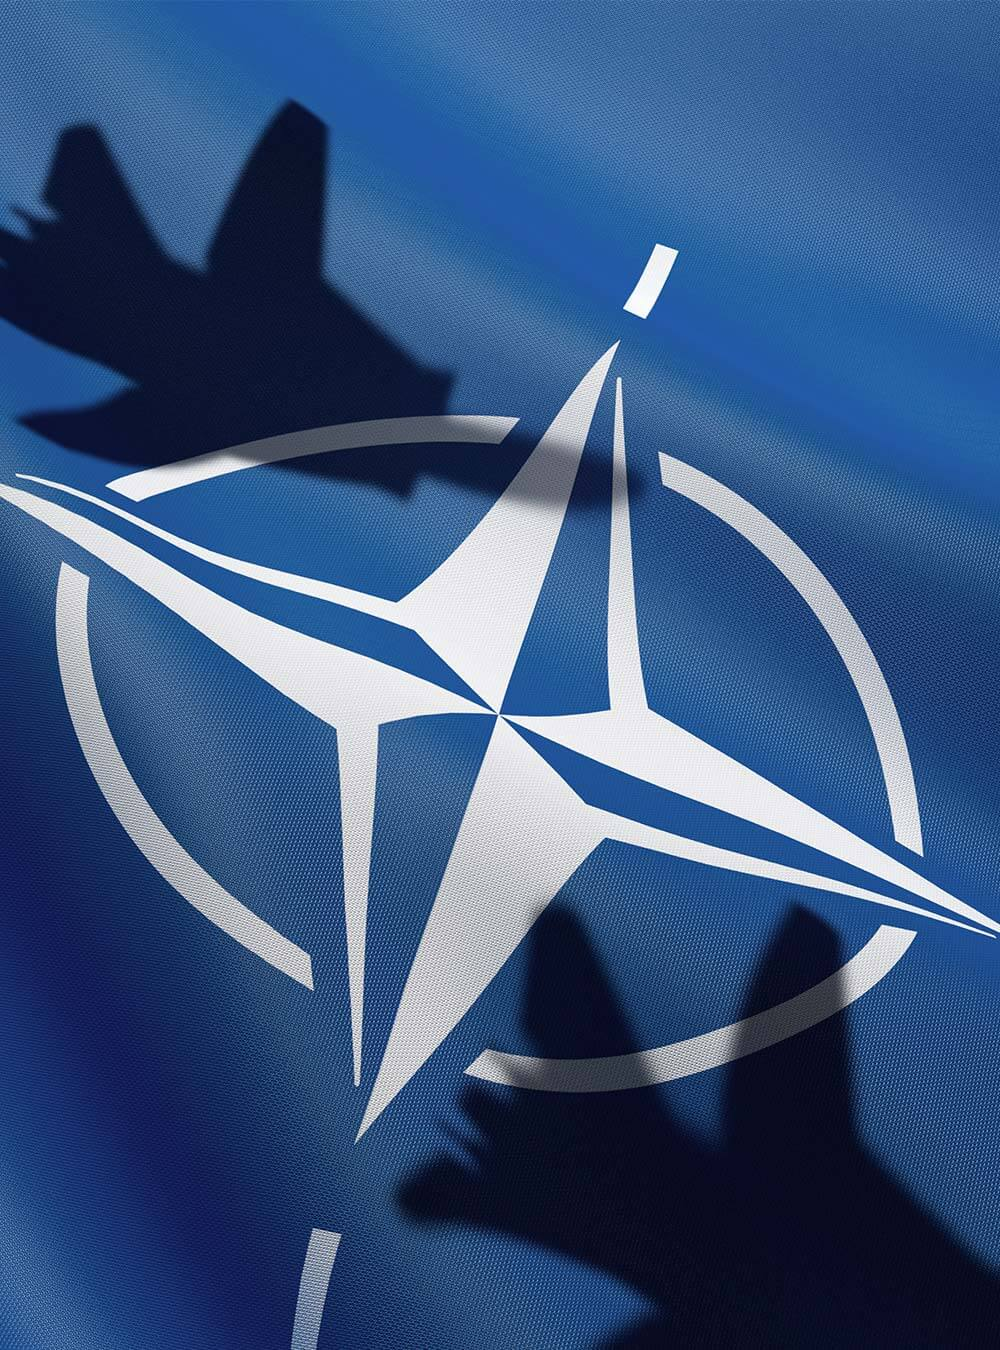 NATO Flag with Fighter Shadows